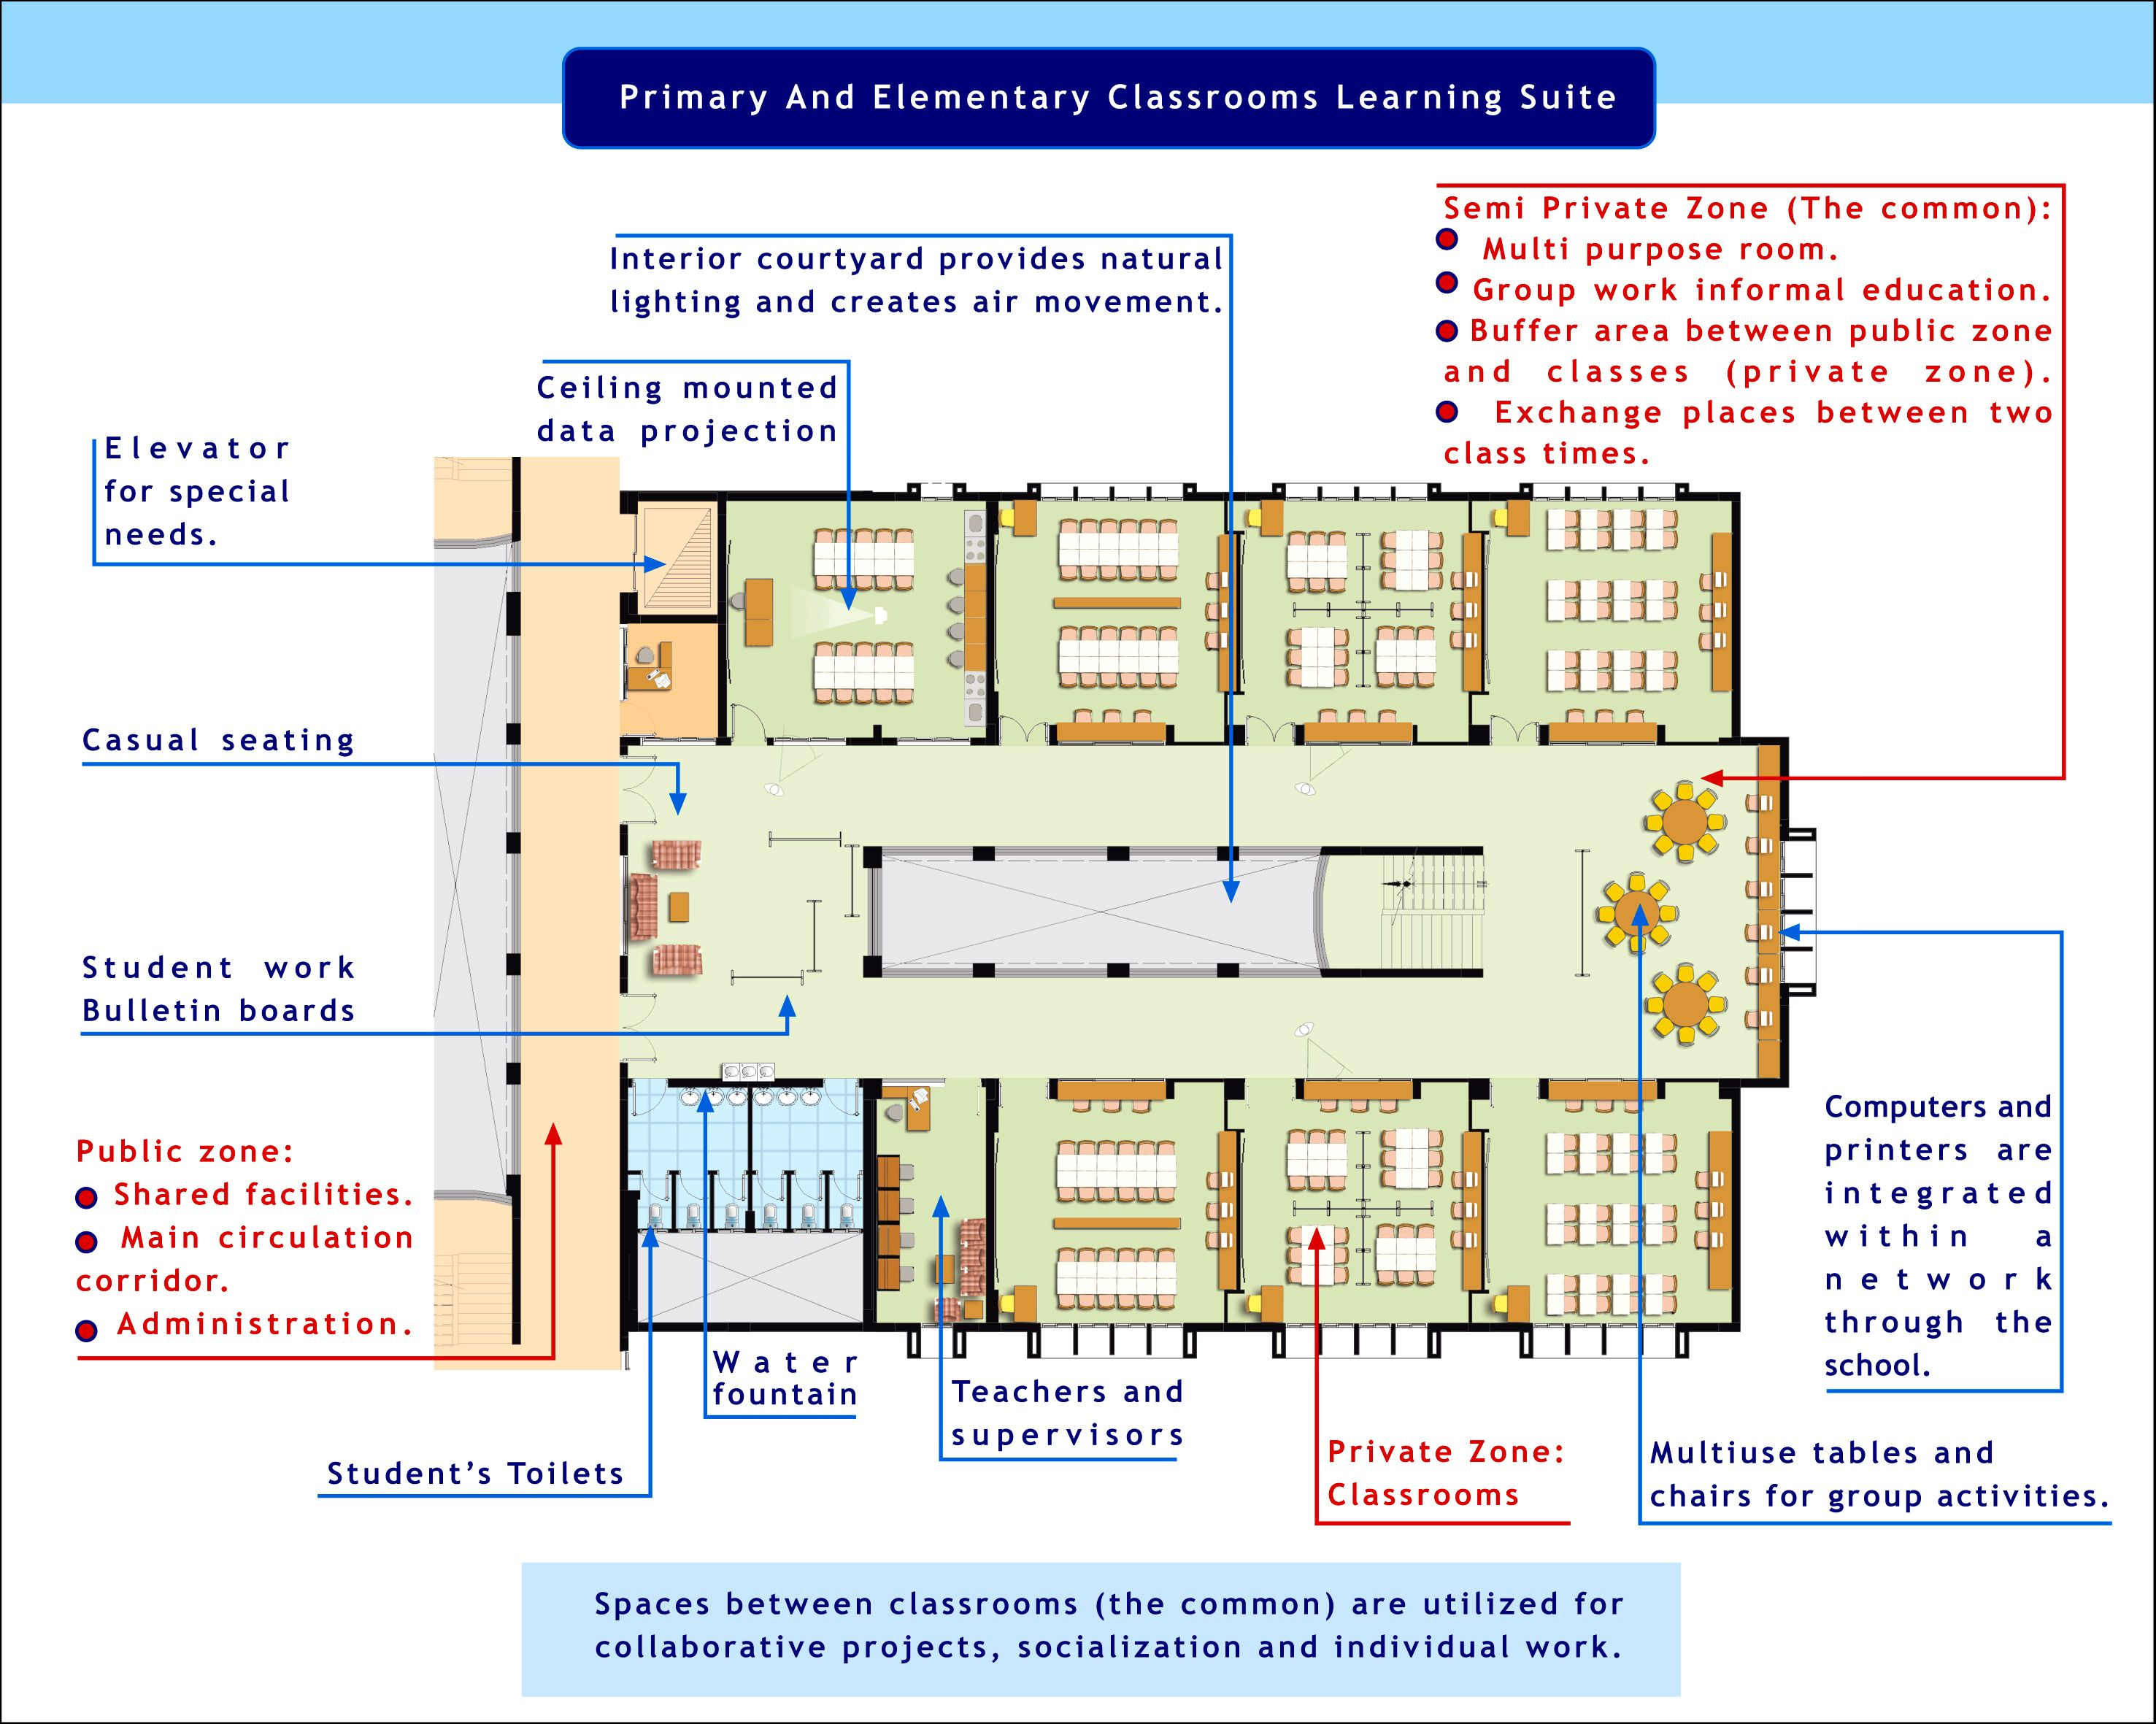 Create A Preschool Classroom Floor Plan: Primary And Elementary Classrooms Learning Suite